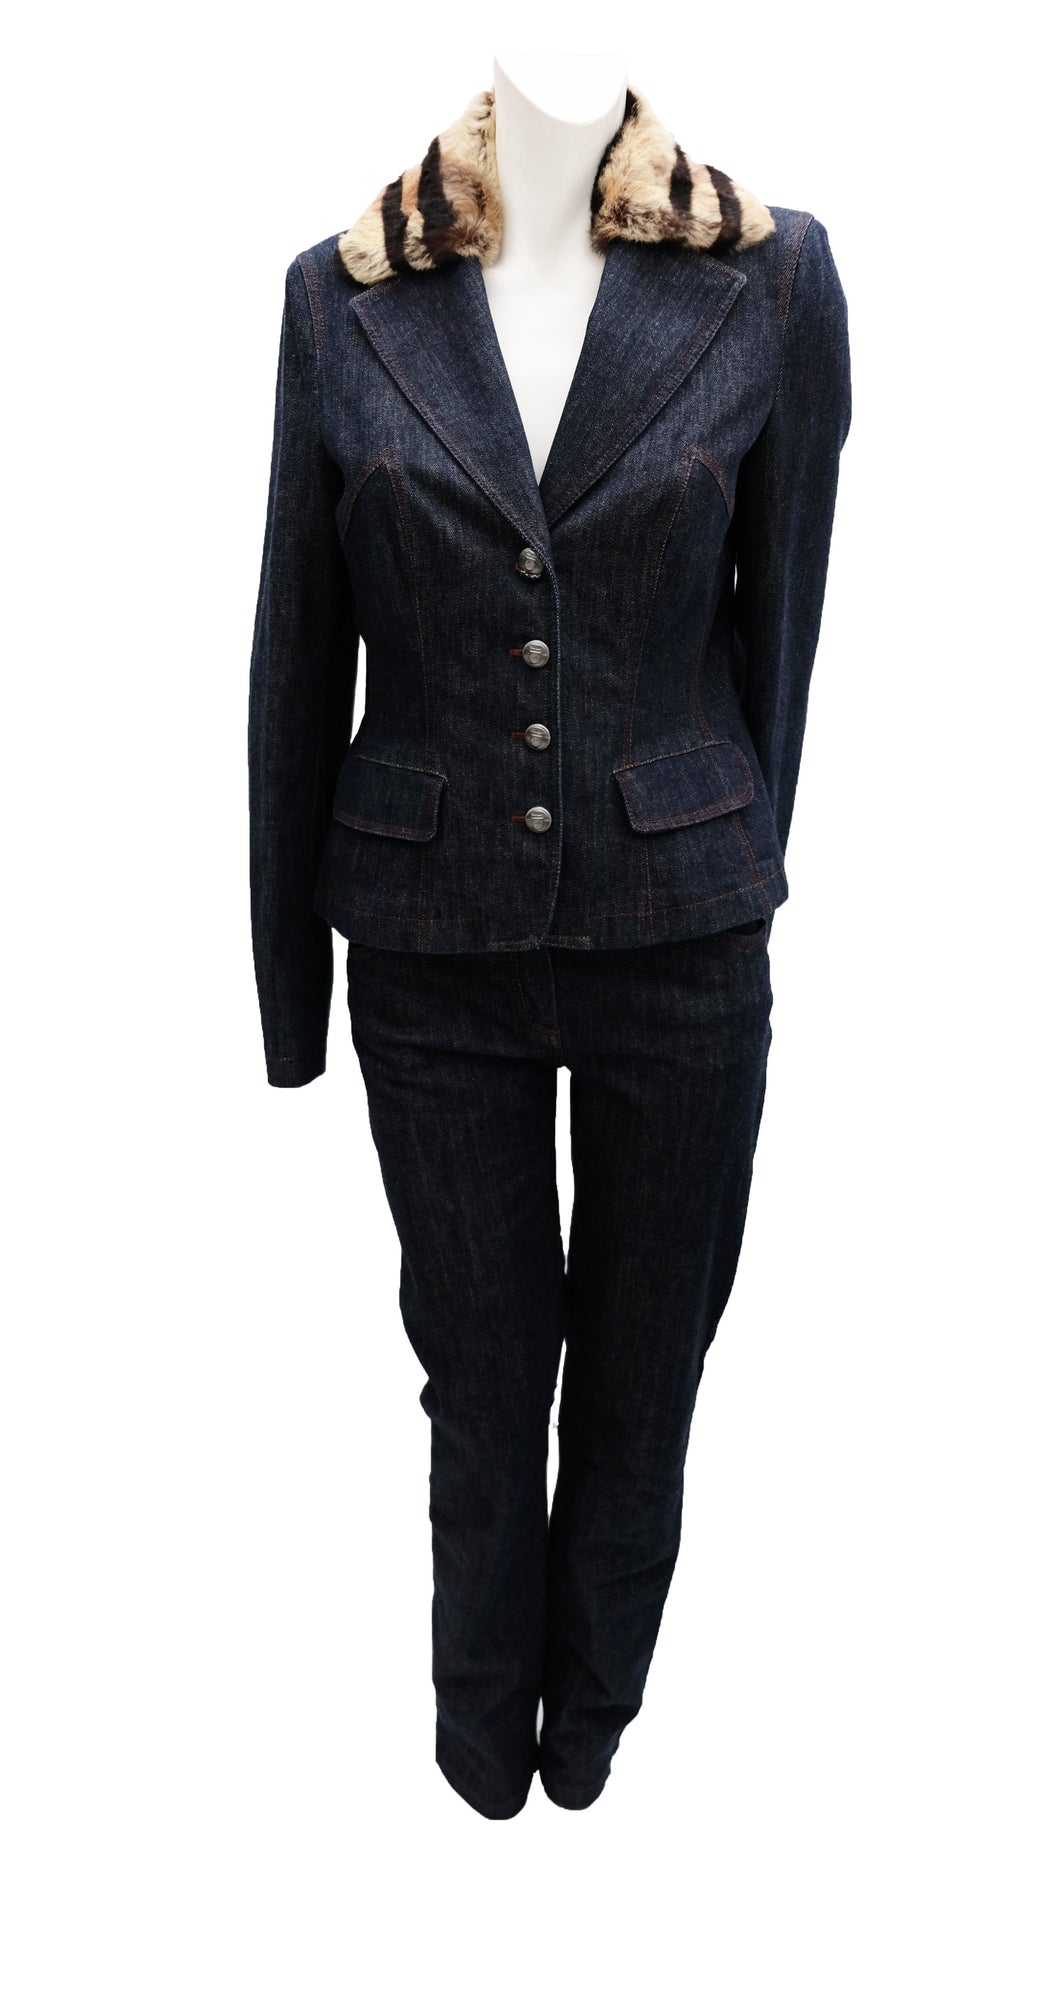 Salvatore Ferragamo Vintage Denim Trouser Suit with Fur Collar, UK10-12